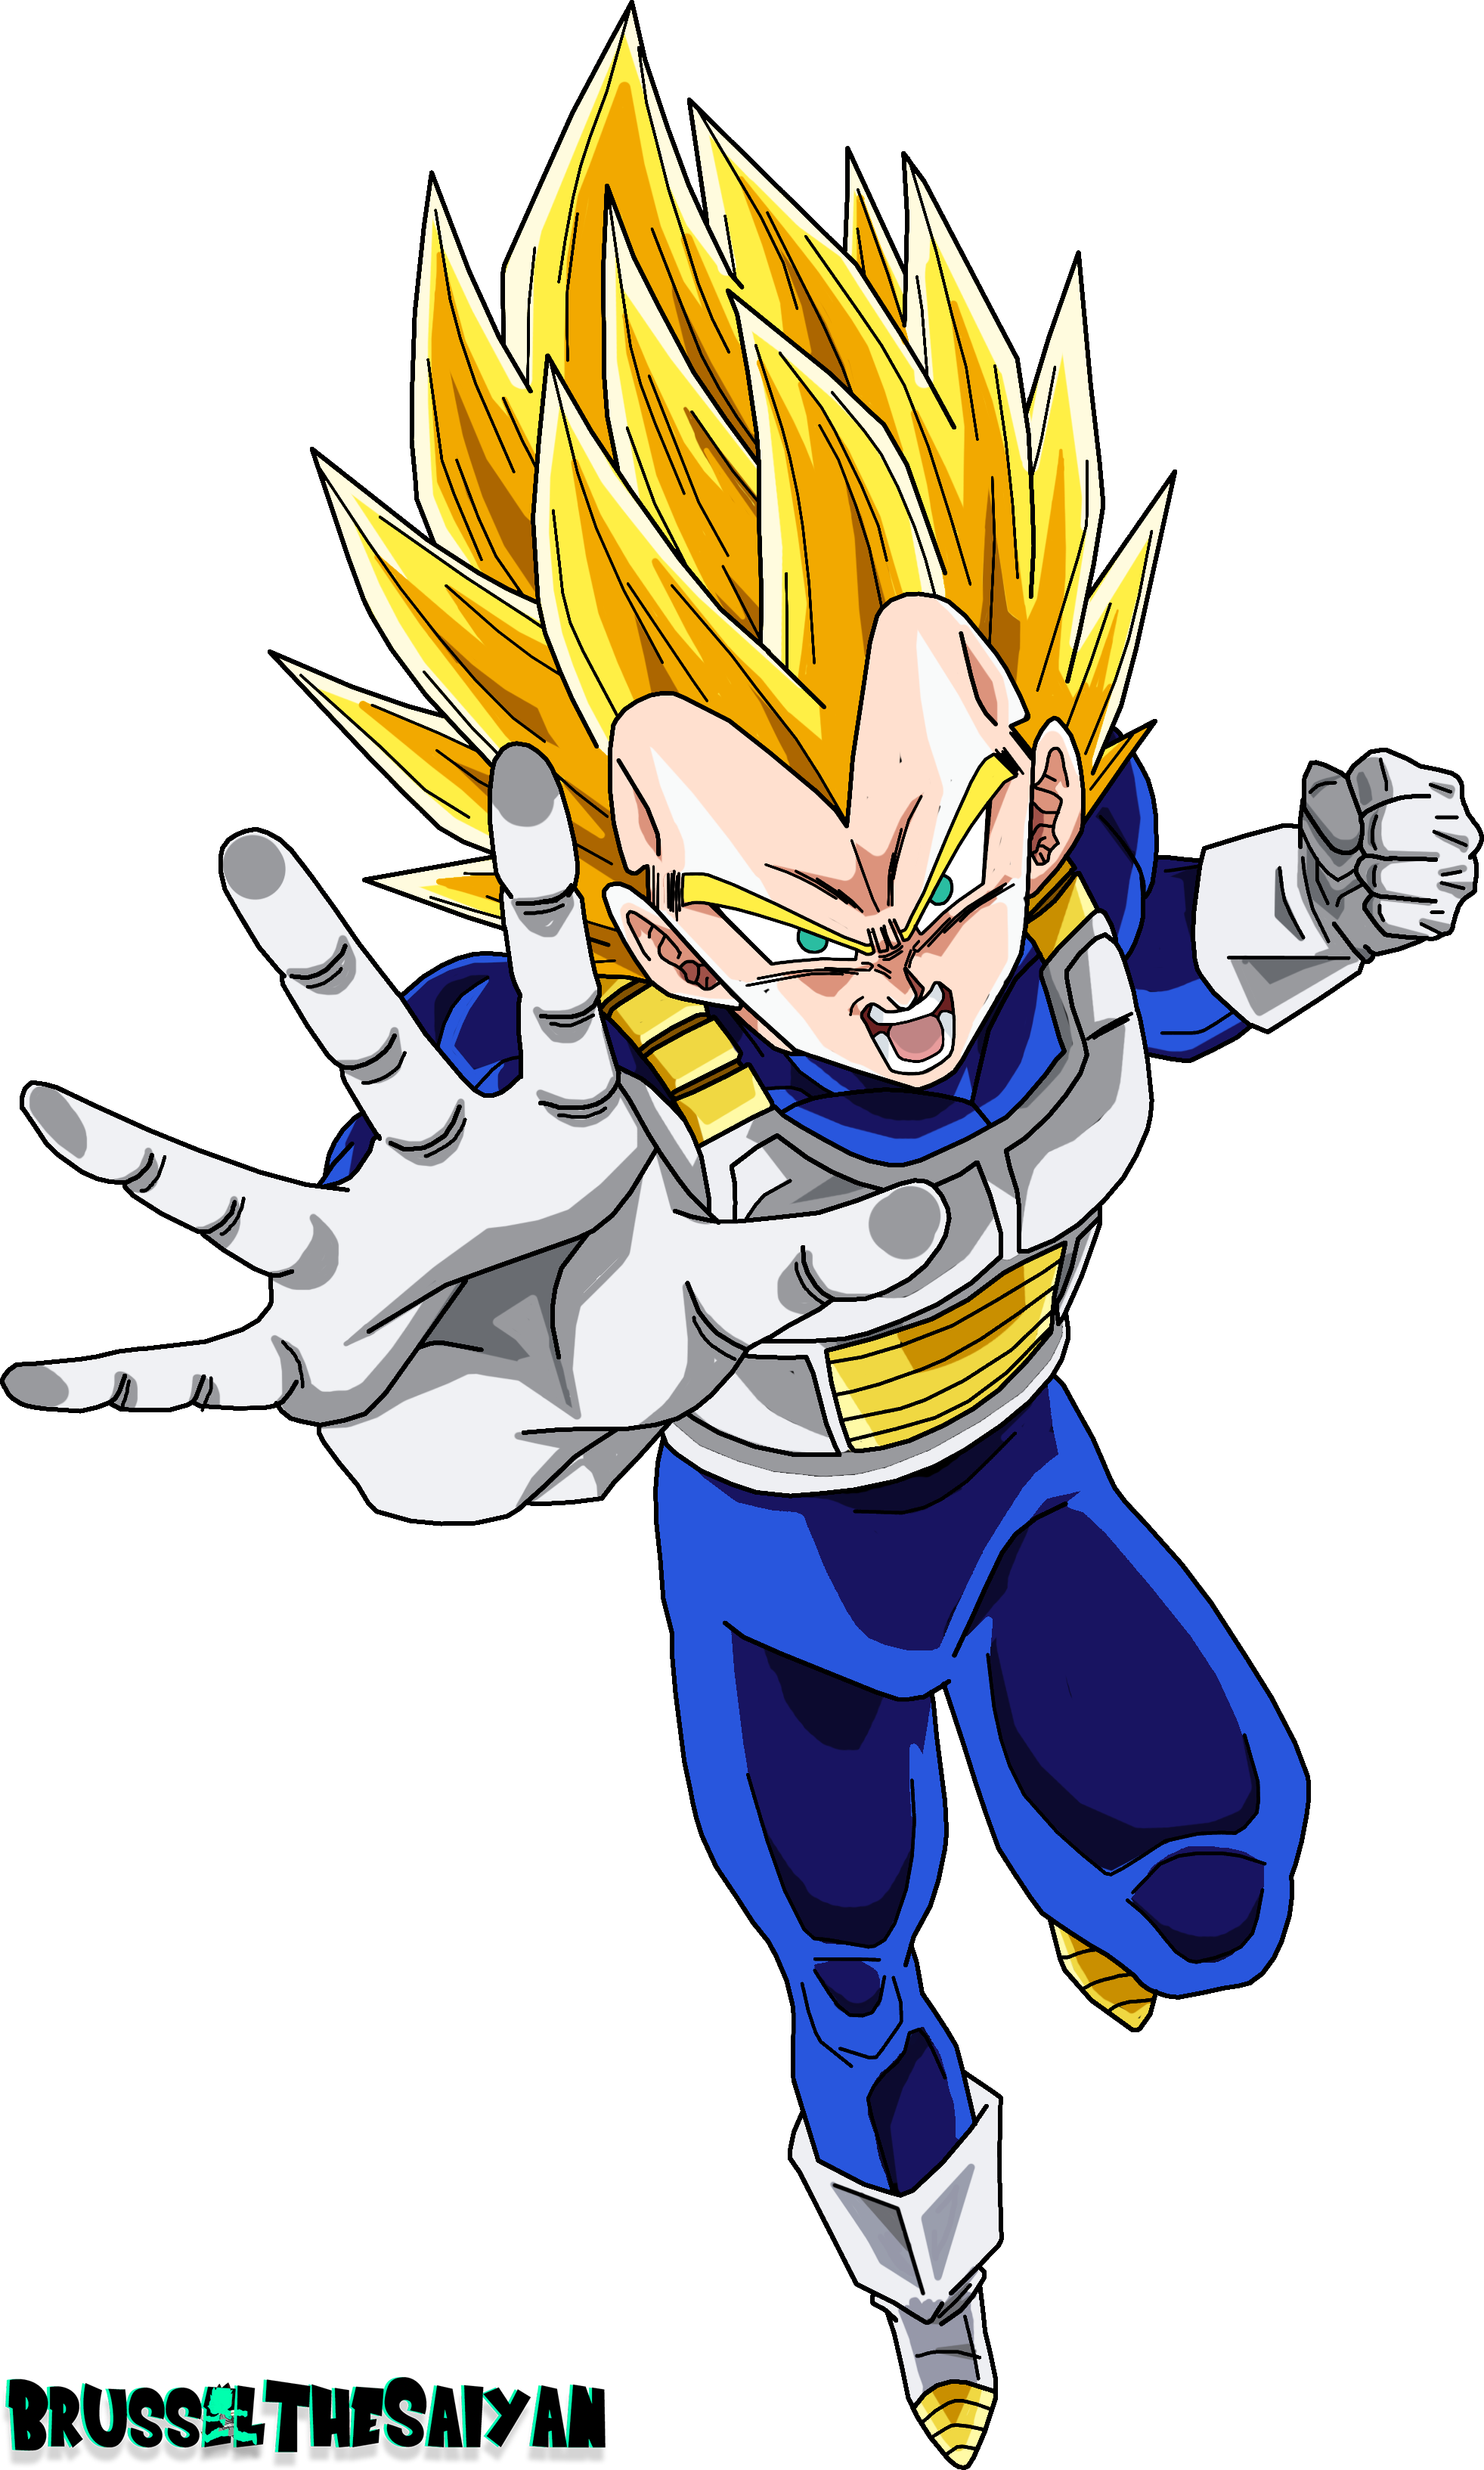 Super Saiyan 2 Vegeta By Brusselthesaiyan On Deviantart